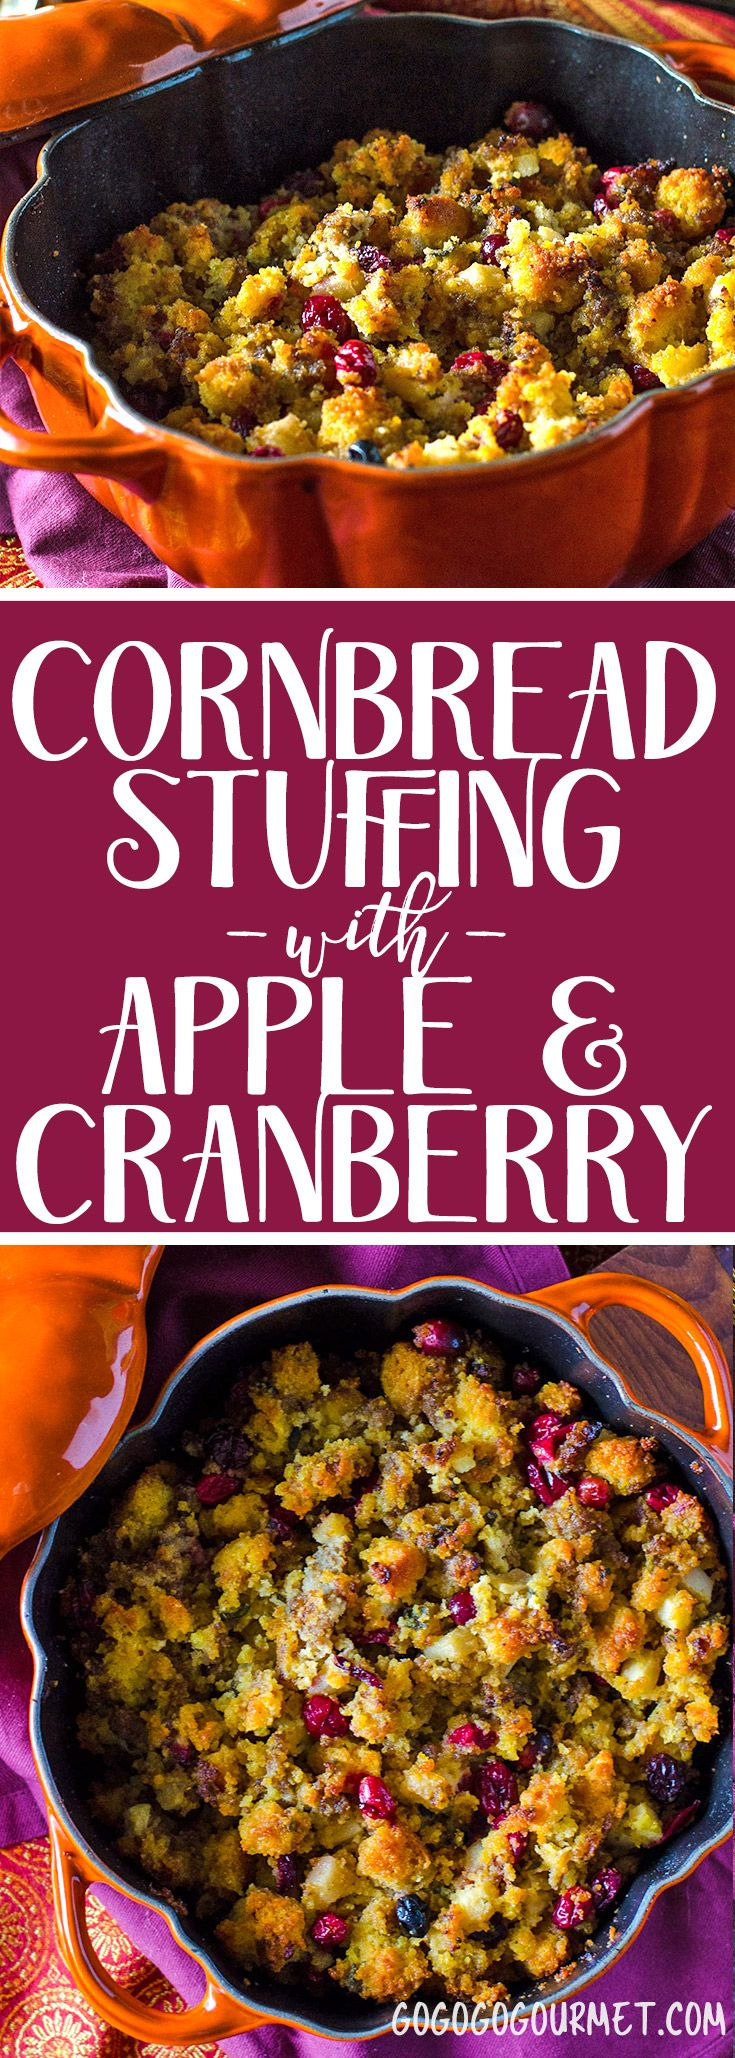 This stuffing is so full of fall flavor! Cornbread dressing with sage, maple sausage, apple and cranberry. #thanksgiving #thanksgivingdinner